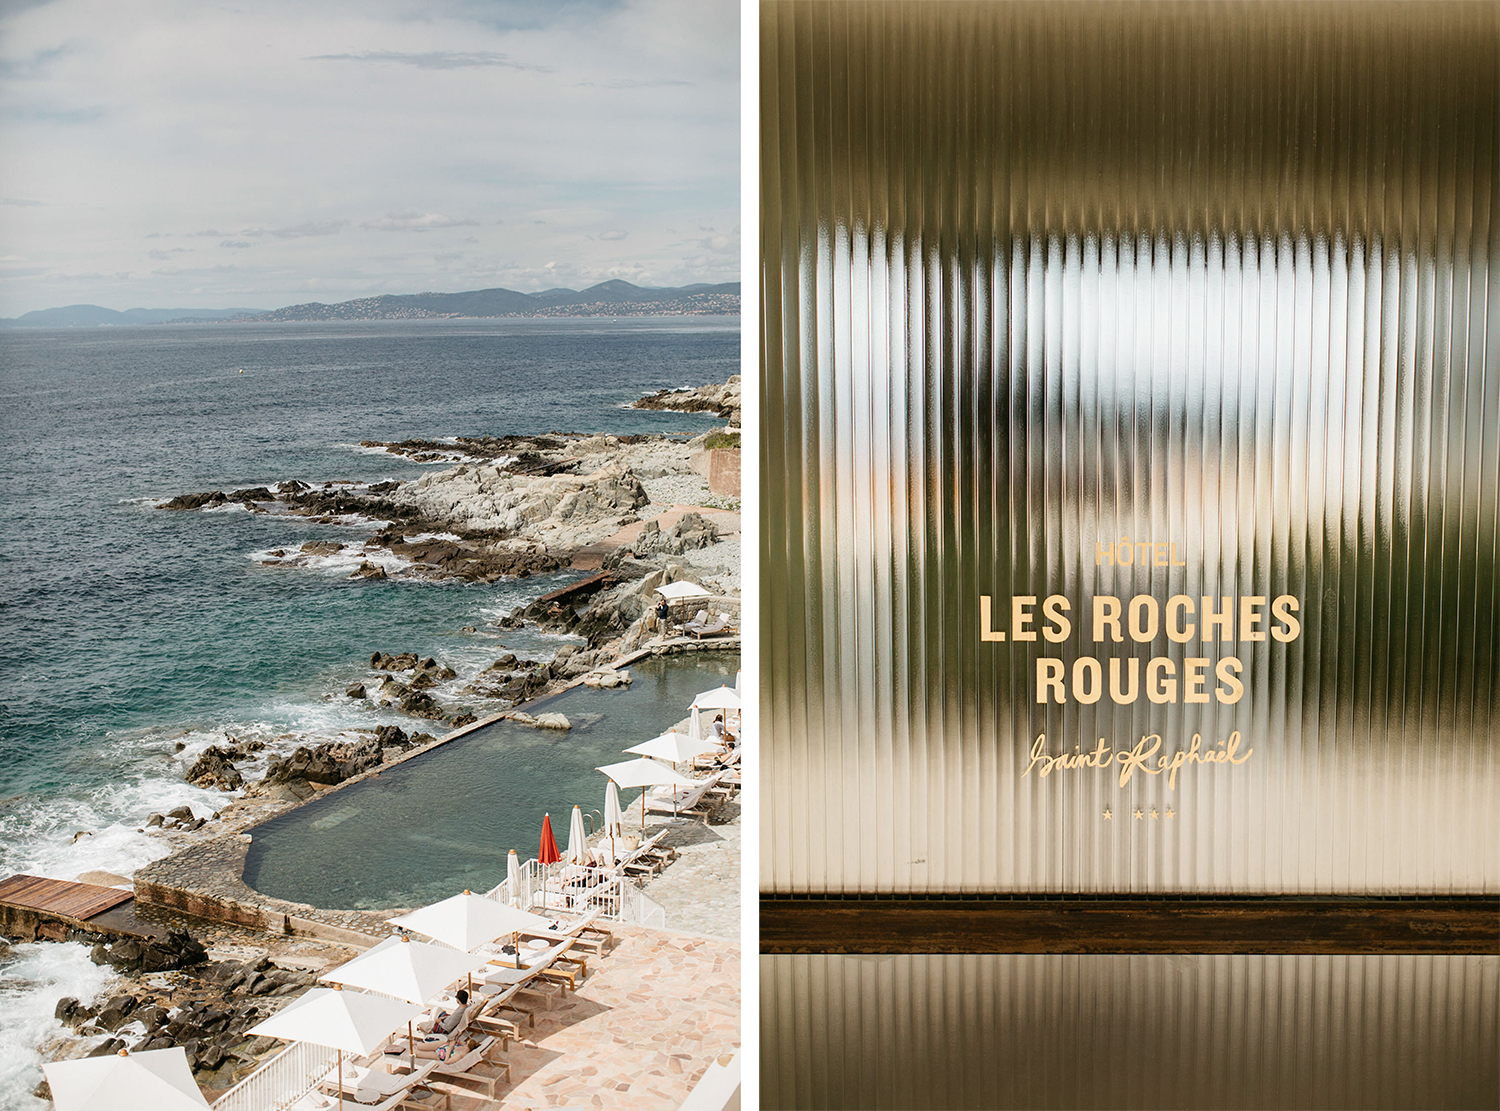 Hotel Des Roches Rouges Wedding At Hotel Les Roches Rouges On The French Riviera Lifestories